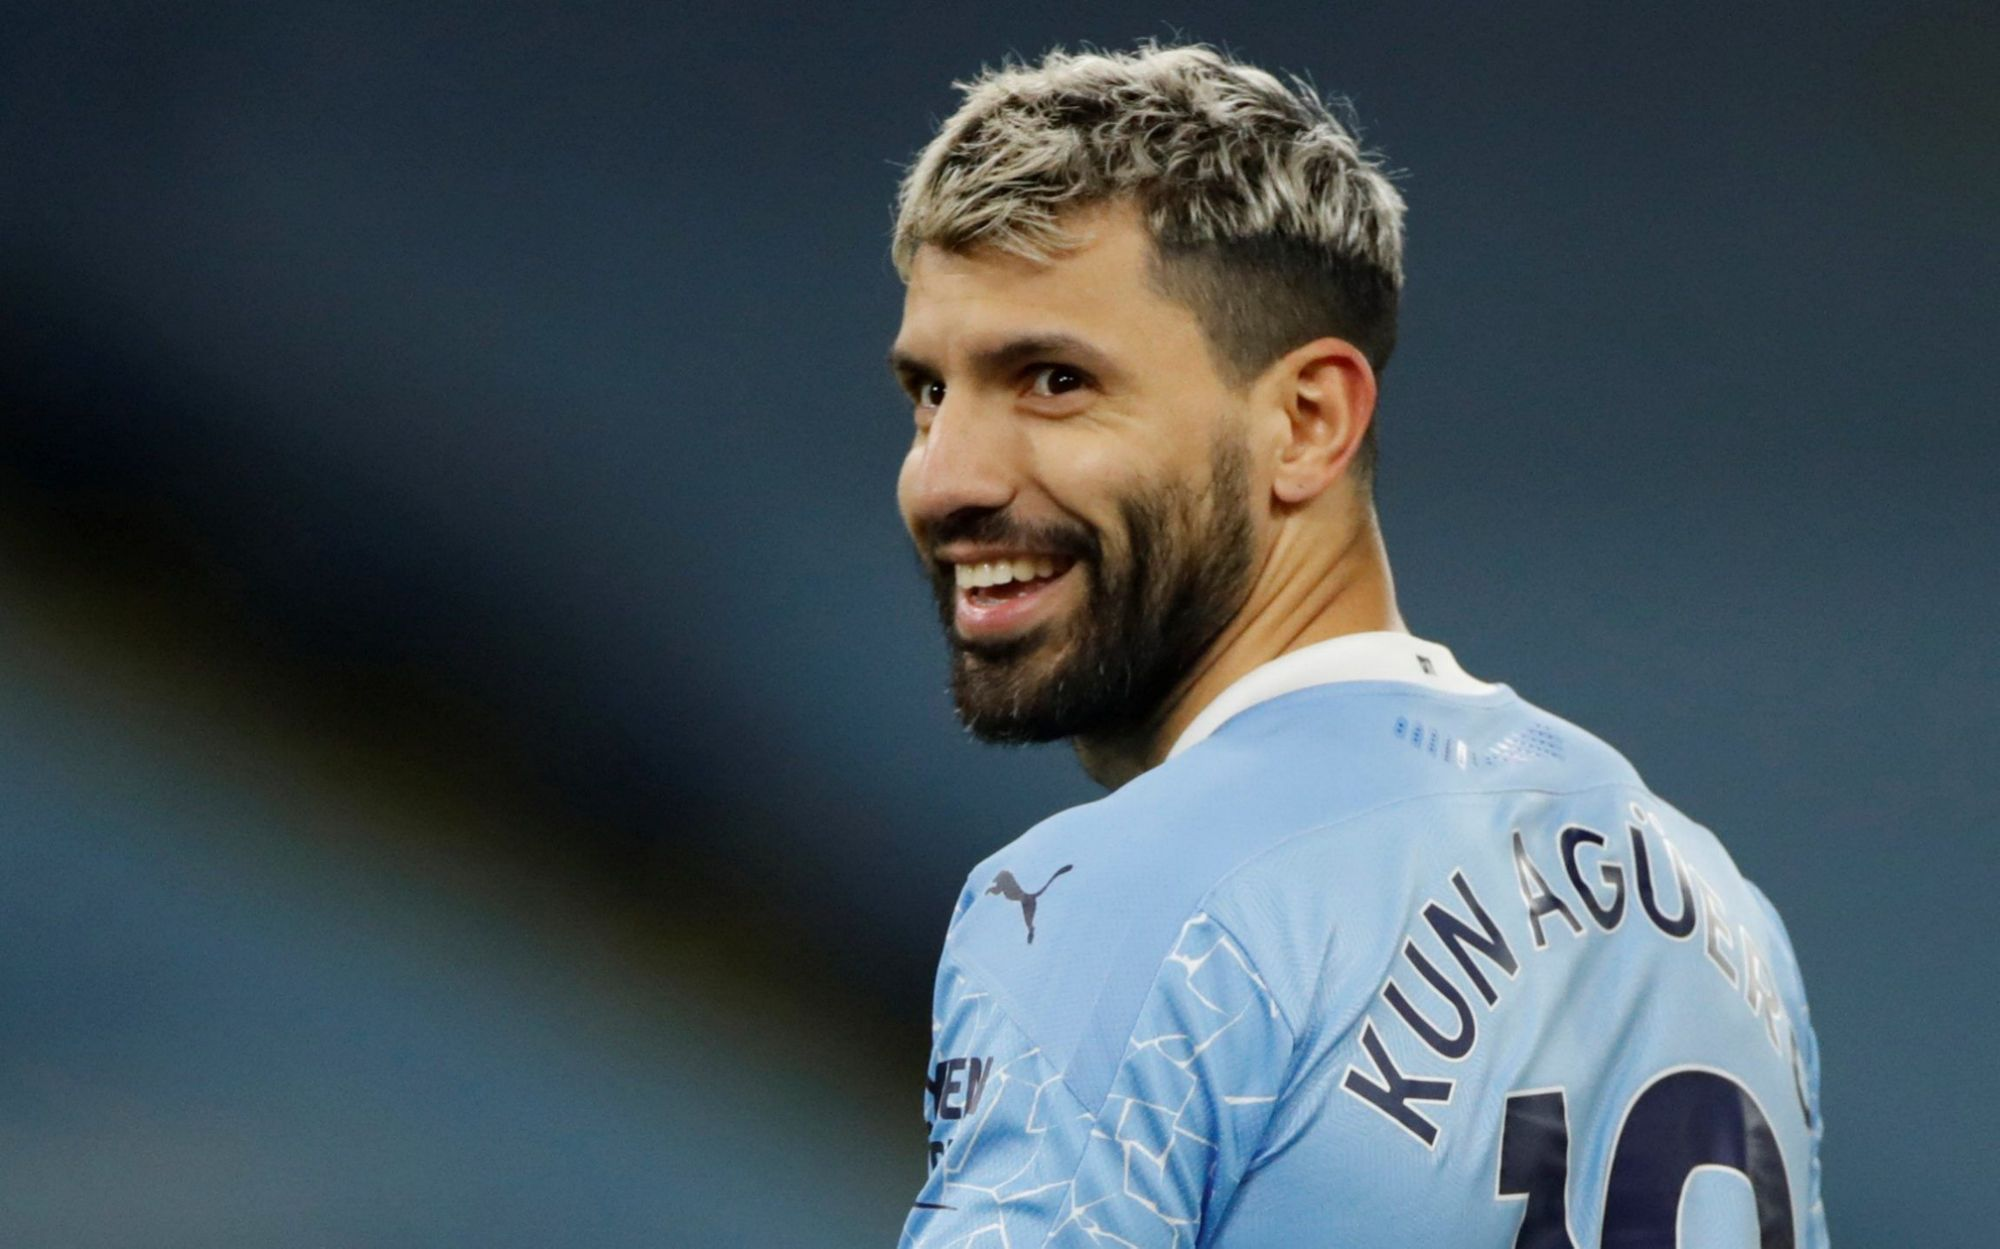 sergio-aguero-hoping-for-covid-all-clear-to-make-manchester-city-return